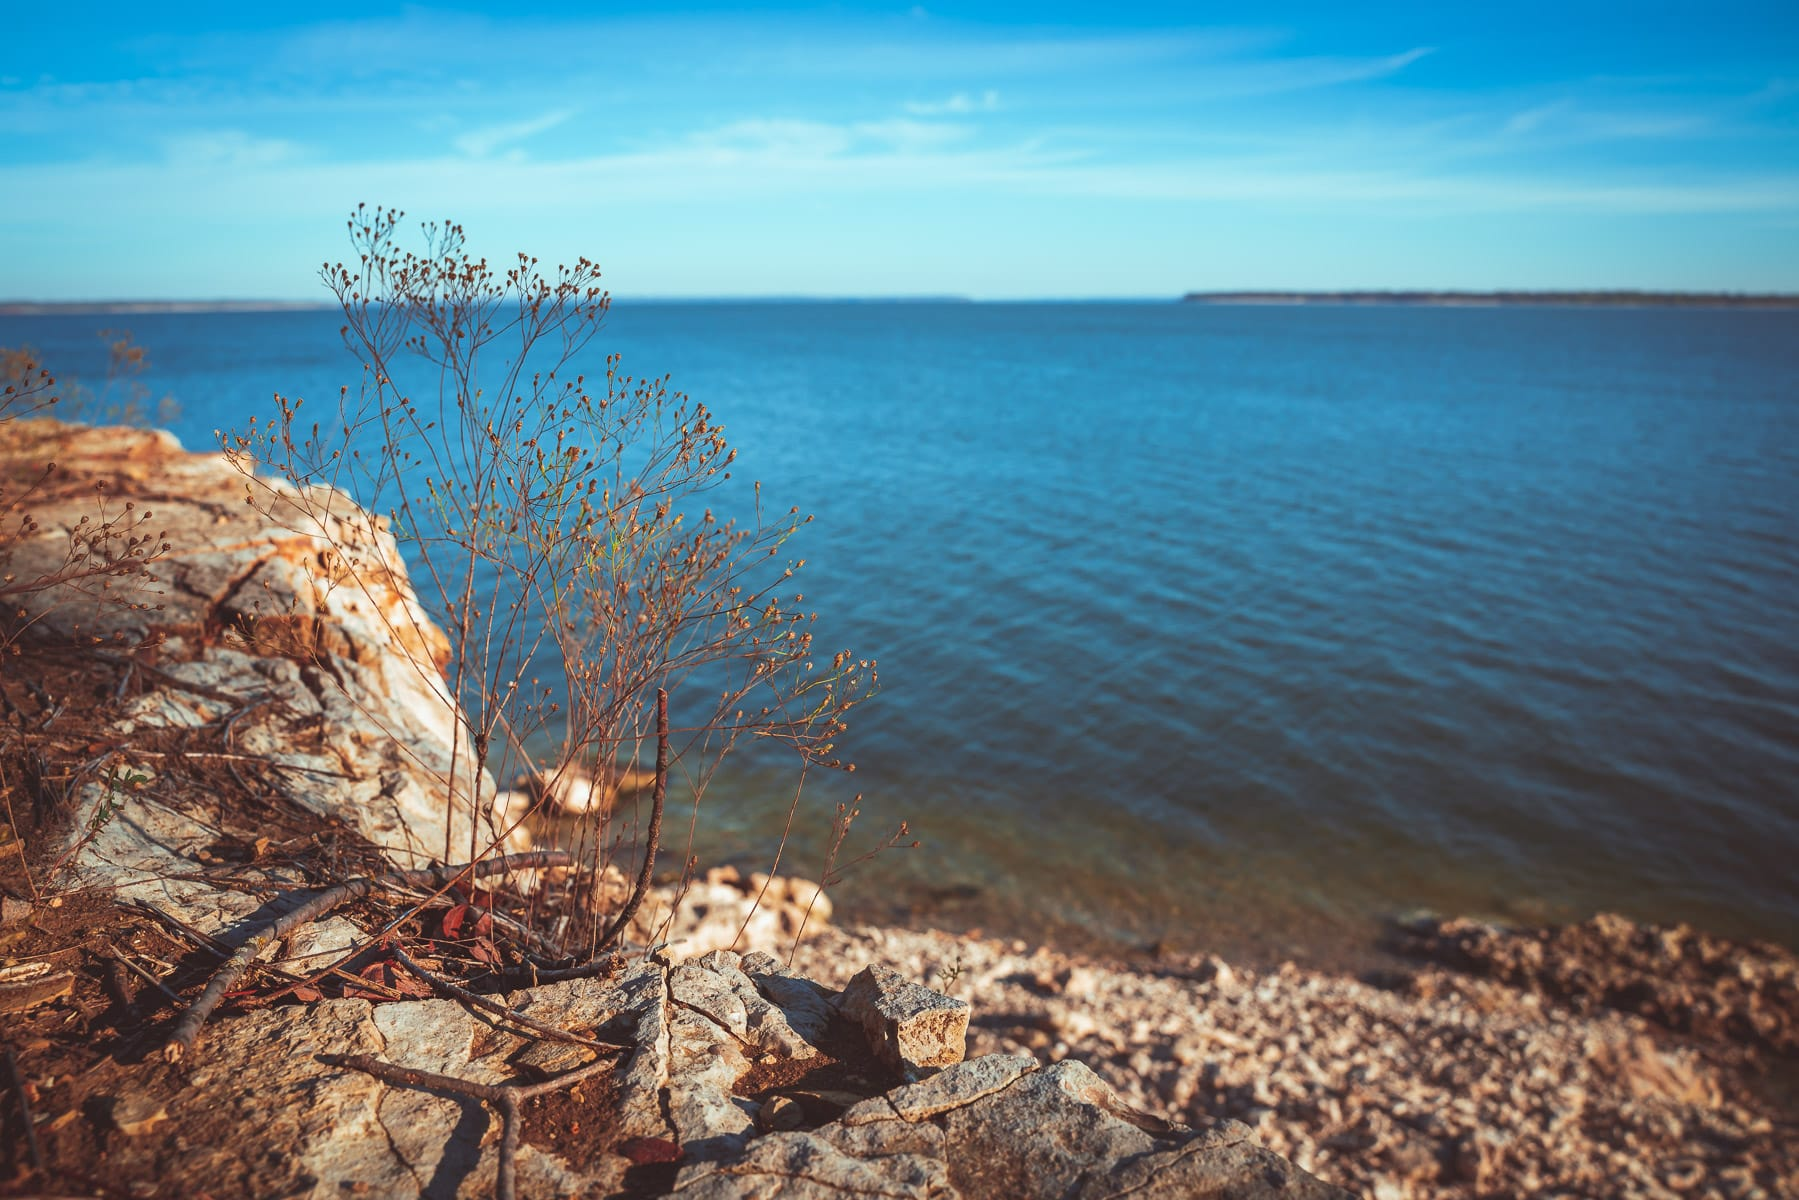 A plant grows on a cliff overlooking Lake Texoma at Eisenhower State Park, Texas.